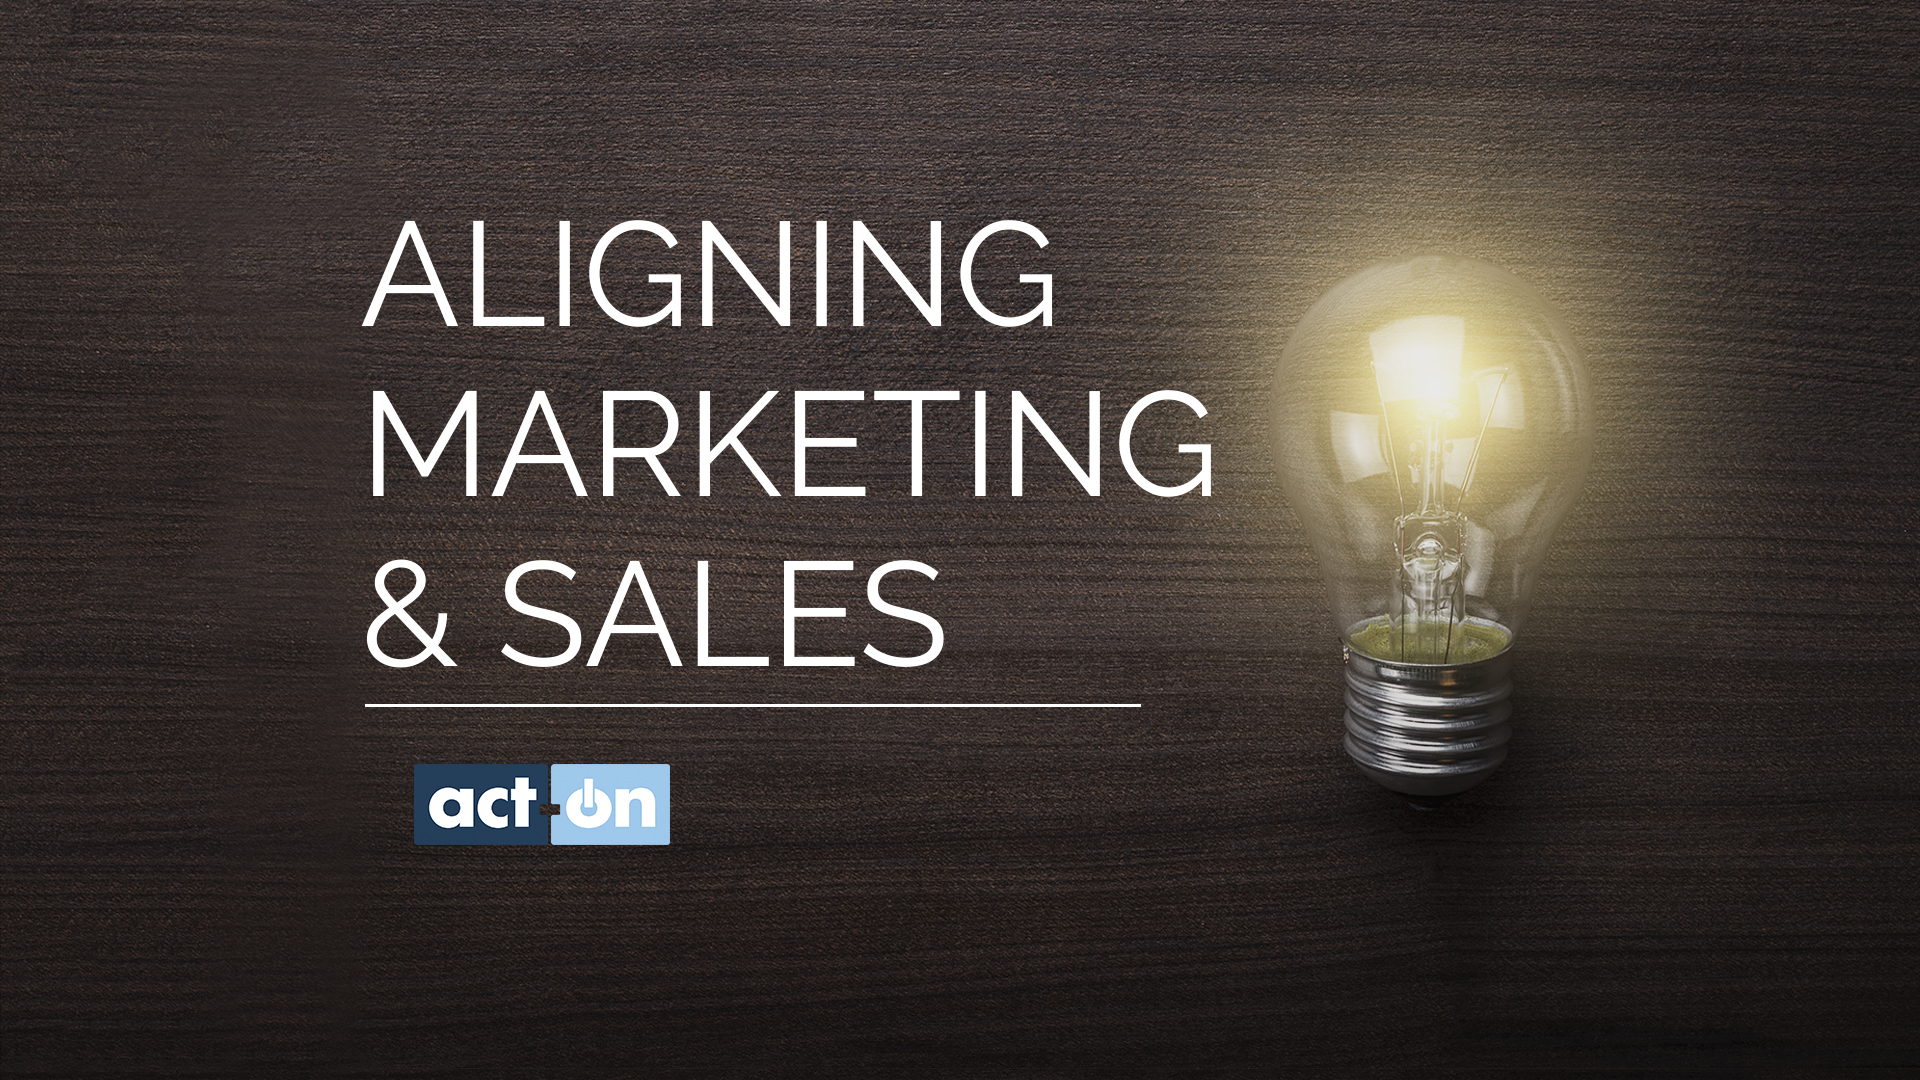 Aligning Marketing and Sales Quick Tips Video